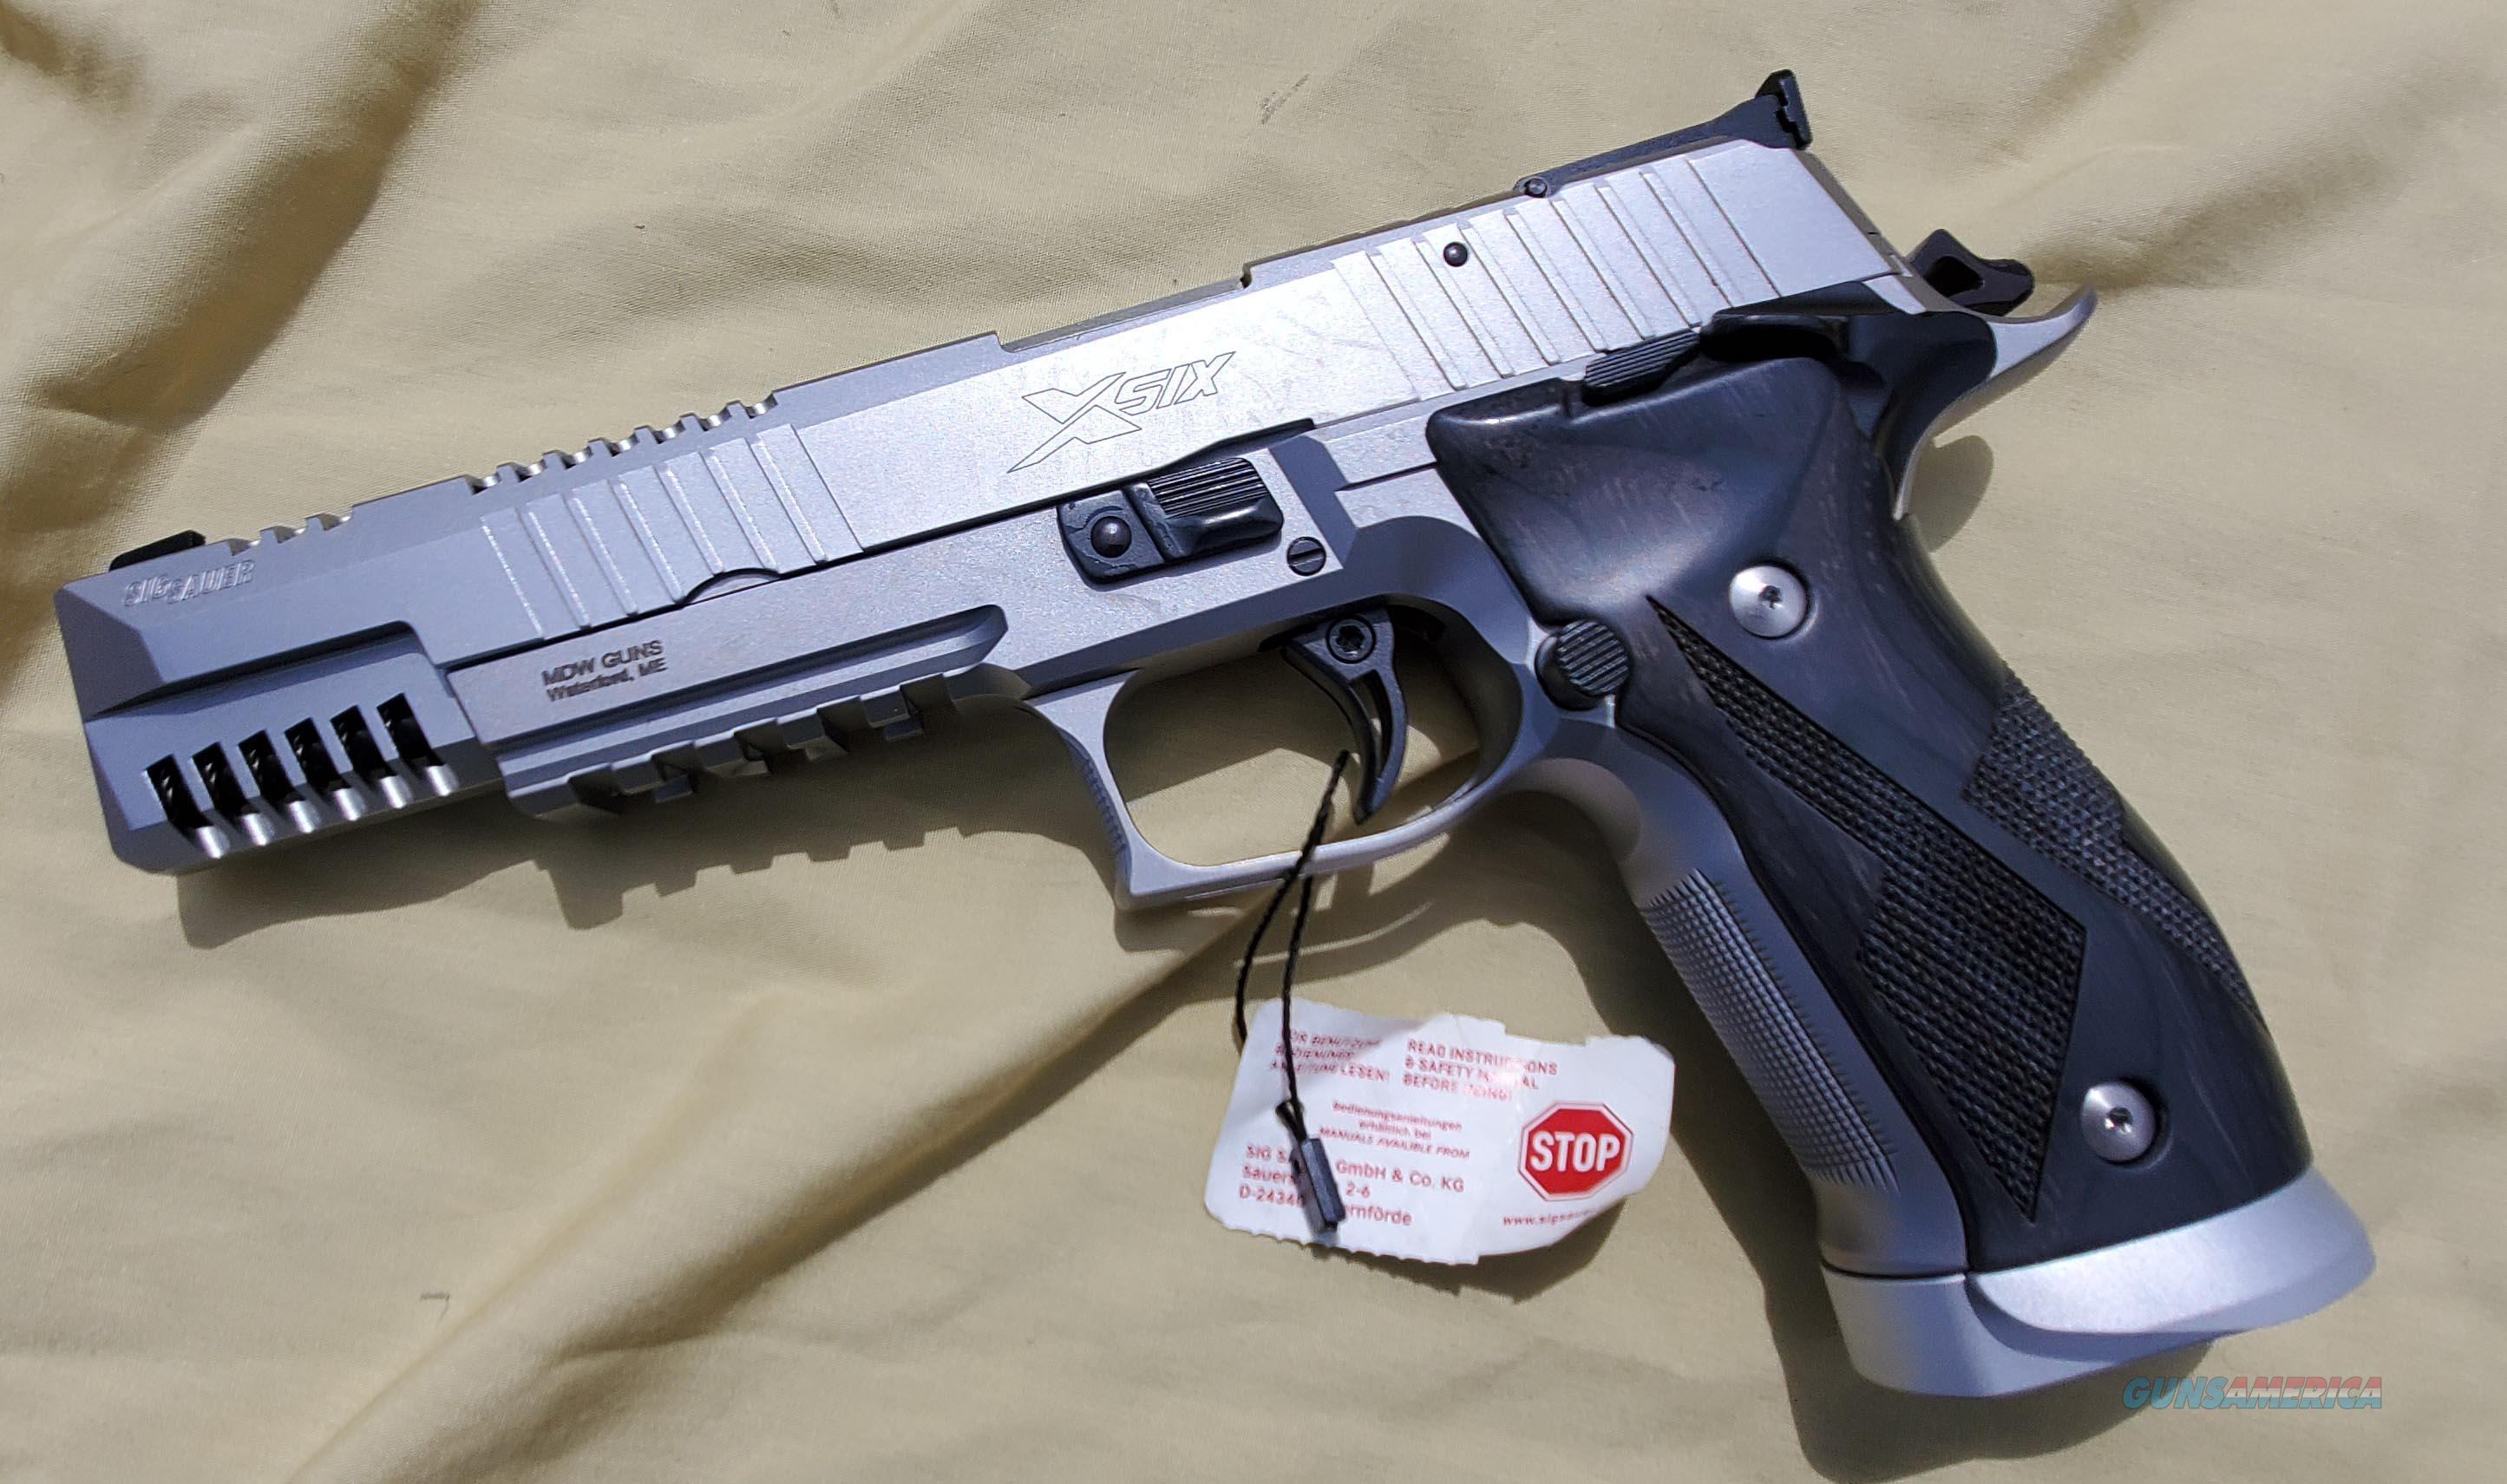 p226 wts userimages